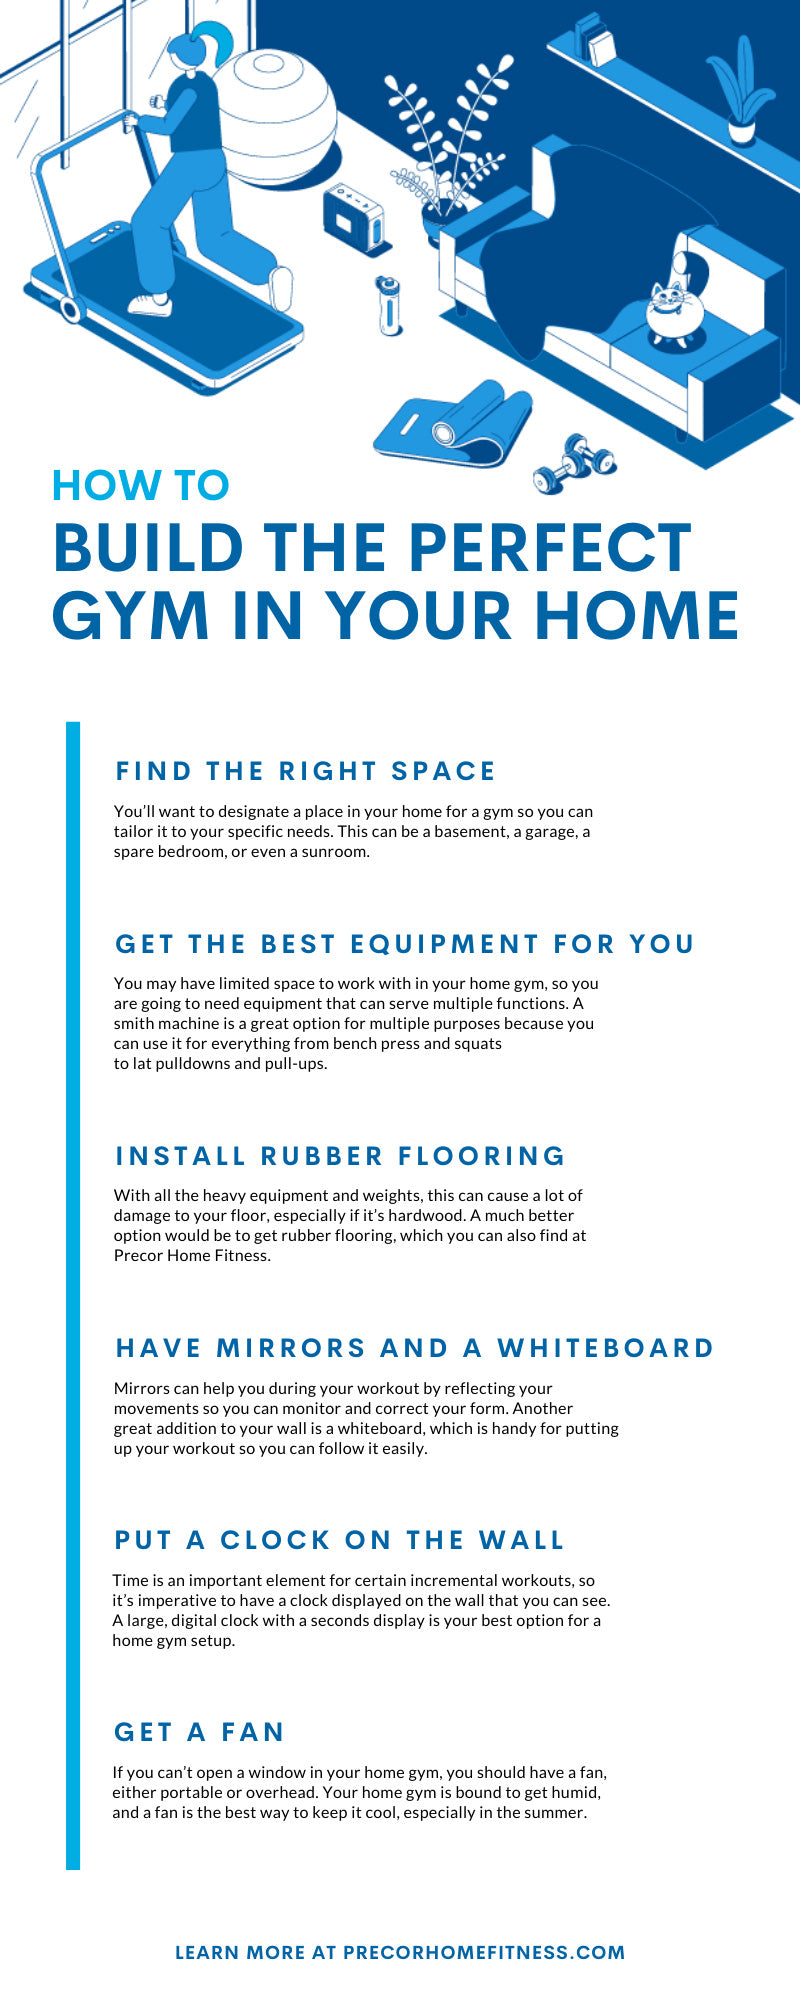 How to Build the Perfect Gym in Your Home